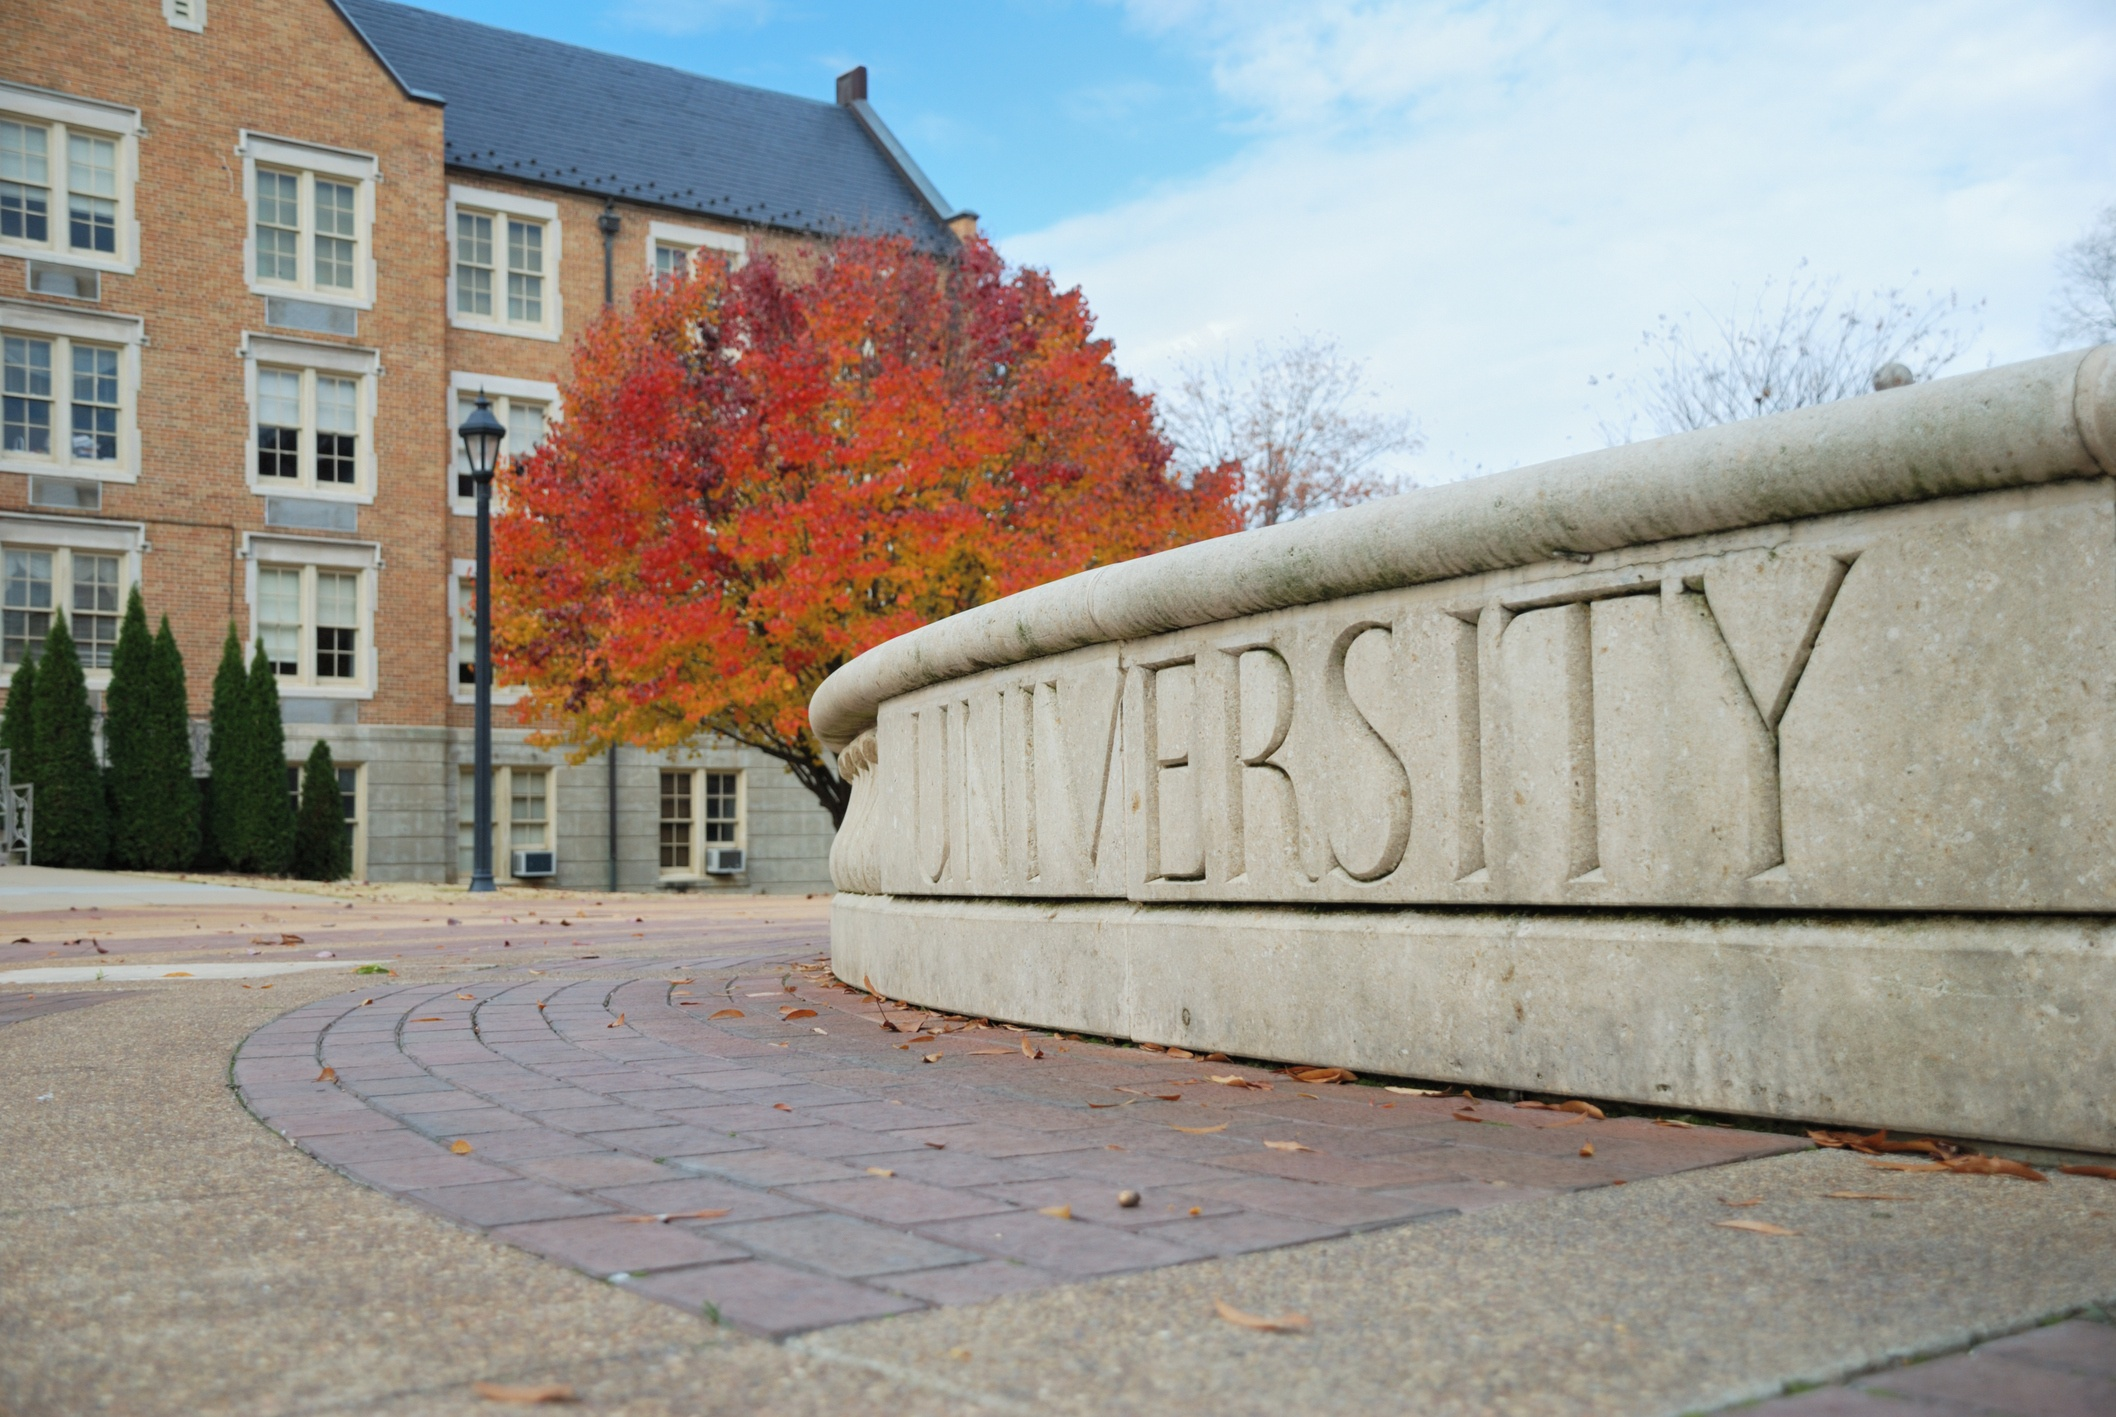 University Sign Made Out of Stone